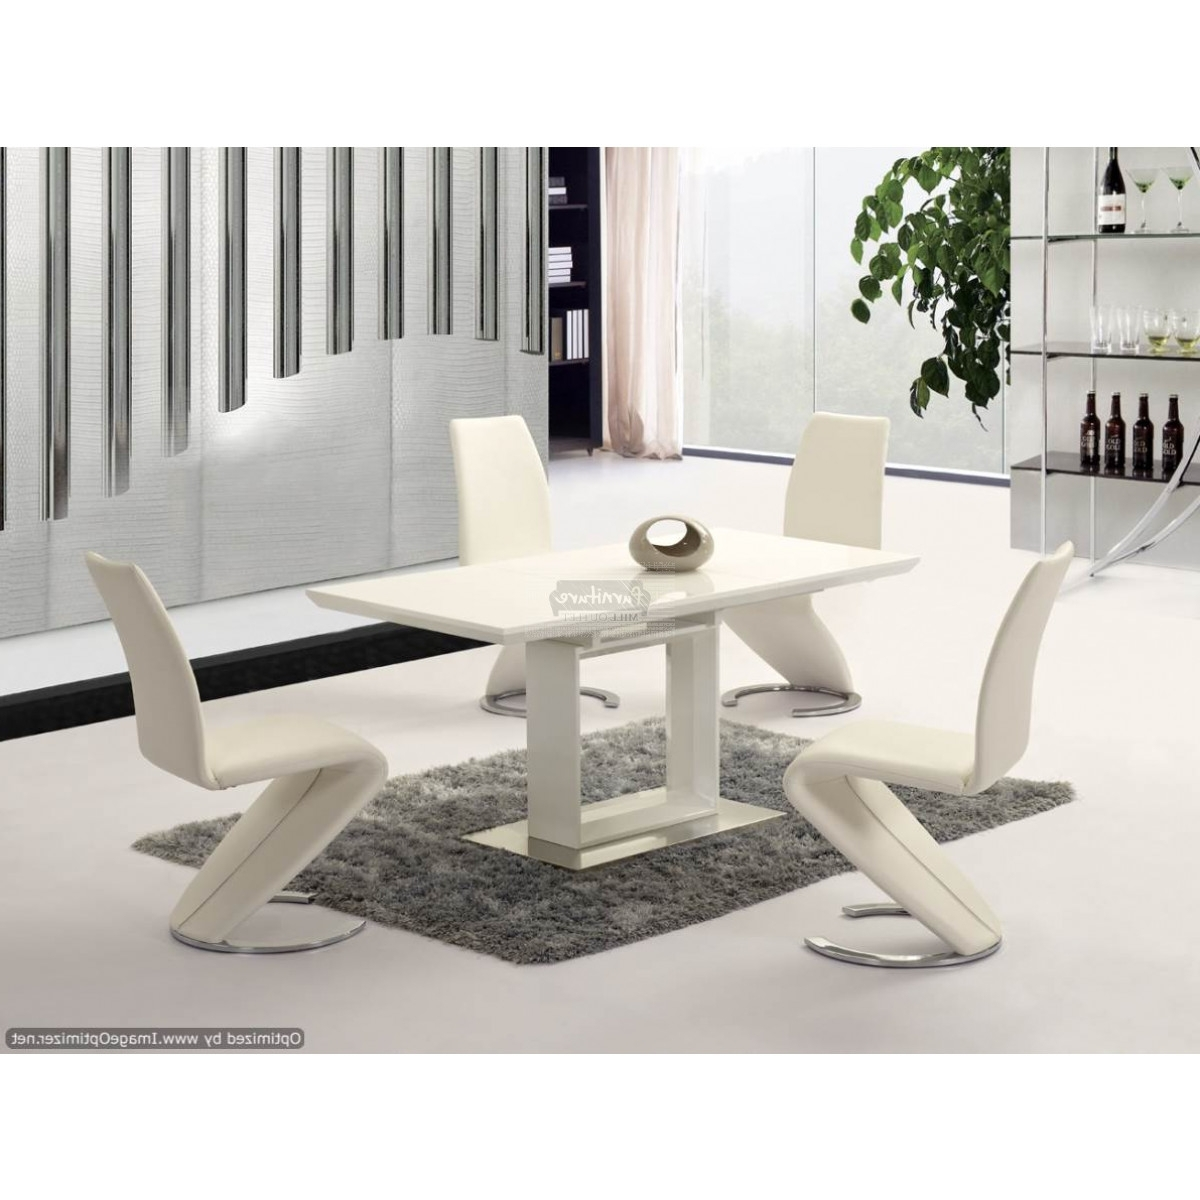 Most Recently Released Cheap White High Gloss Dining Tables For Space White High Gloss Extending Dining Table – 120Cm To 160Cm (View 21 of 25)